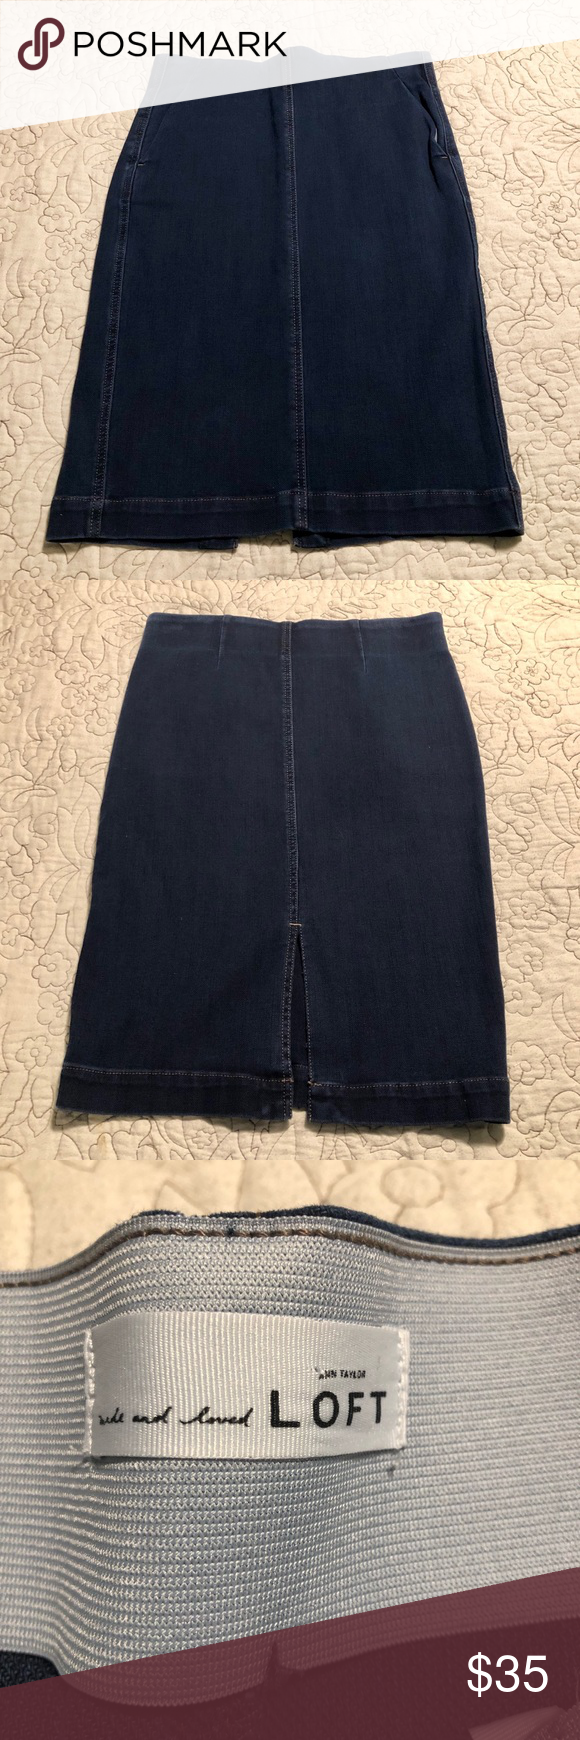 5d03e27900 #190632 Loft Pencil denim skirt In excellent condition! Wide inner elastic  band creates a smooth waist line. Has back slit and side pockets.